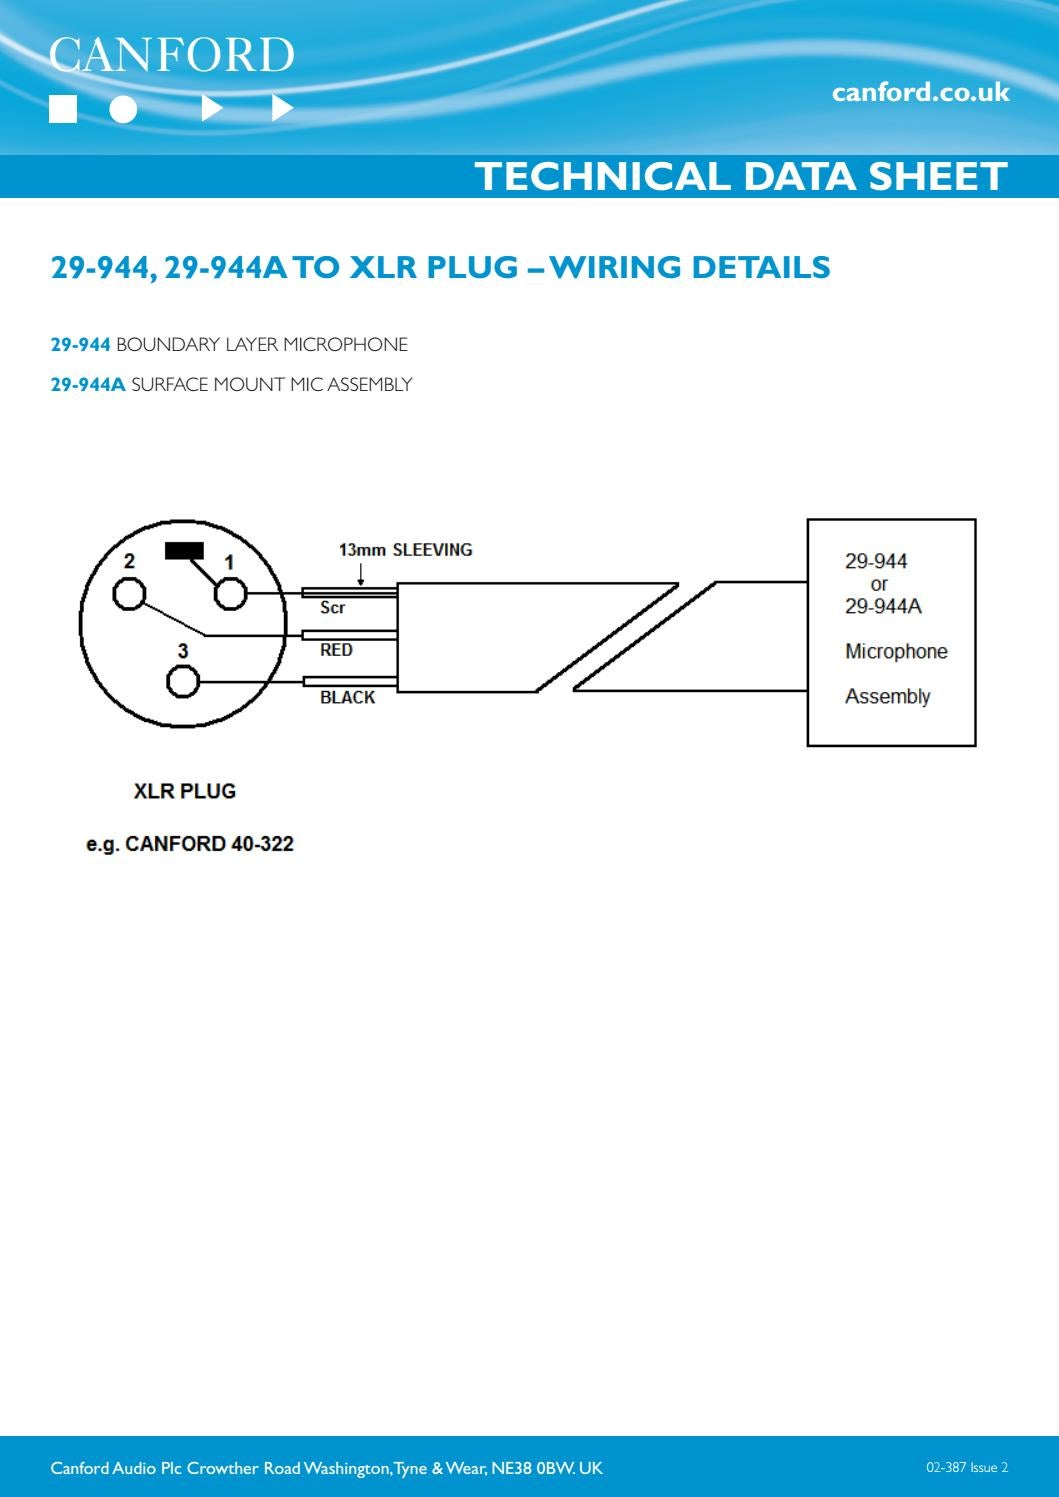 02-387 (29-944, 29-944A) TO XLR PLUG – WIRING DETAILS by Canford on